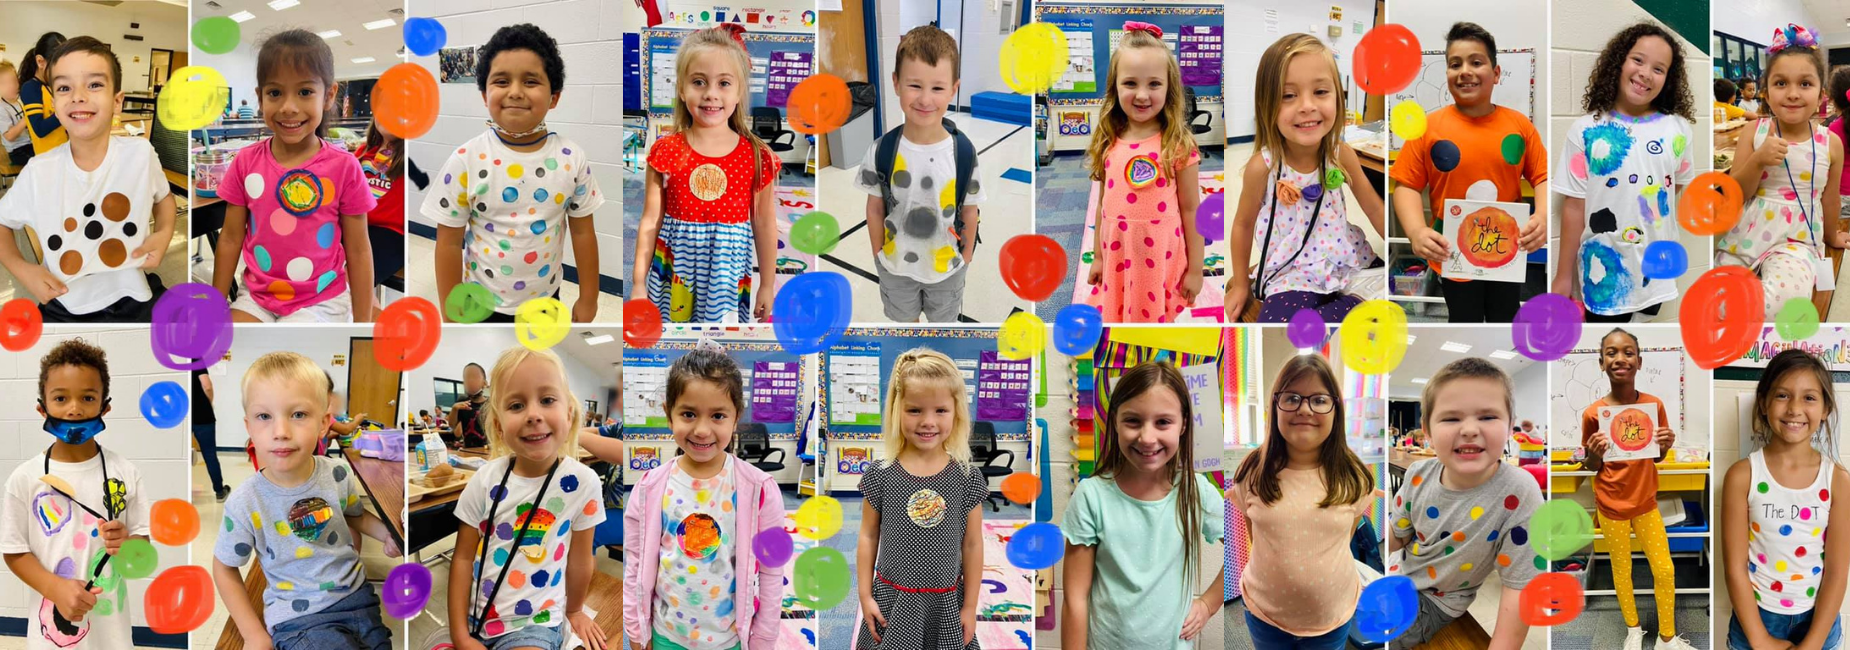 collage of elementary students wearing dots at school